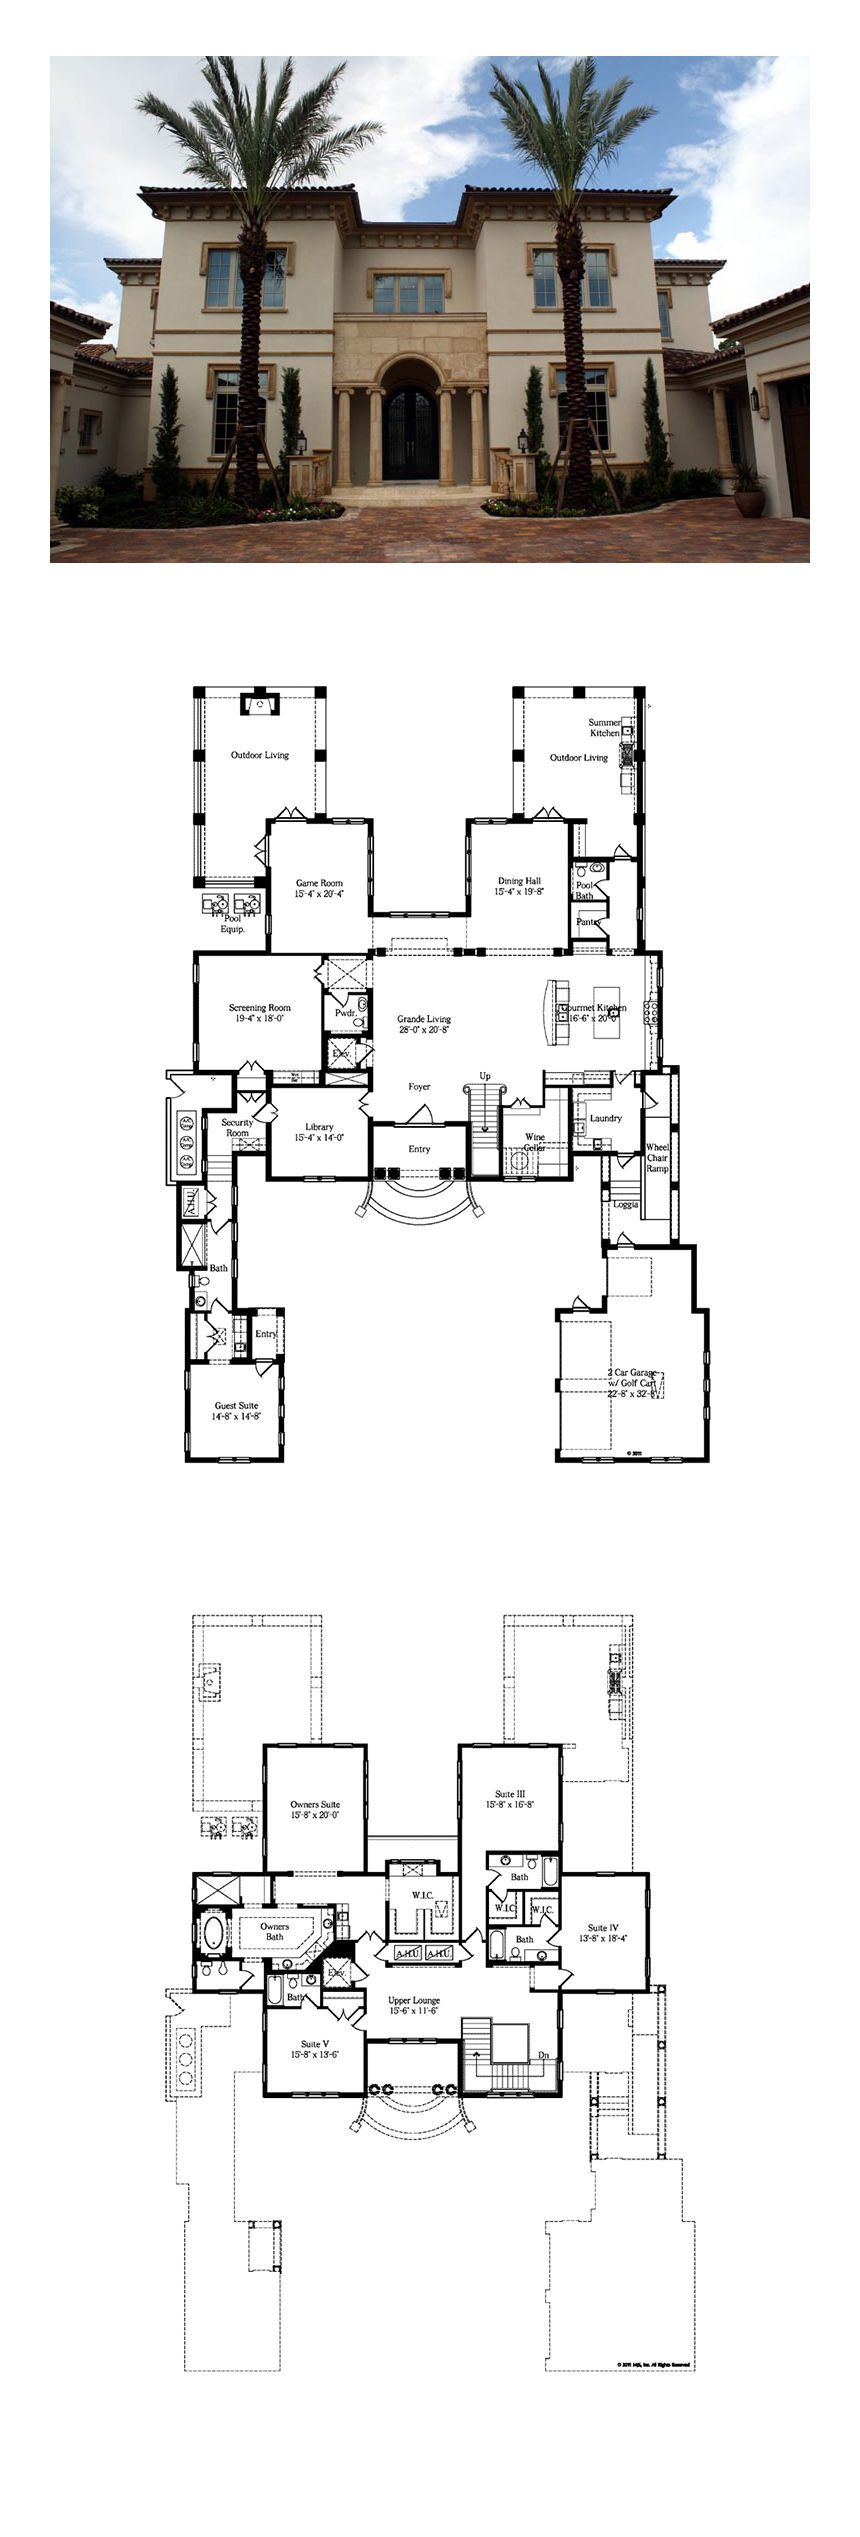 Italian Style House Plan 64727 With 5 Bed 7 Bath 3 Car Garage In 2020 House Plans Luxury Plan Luxury House Plans